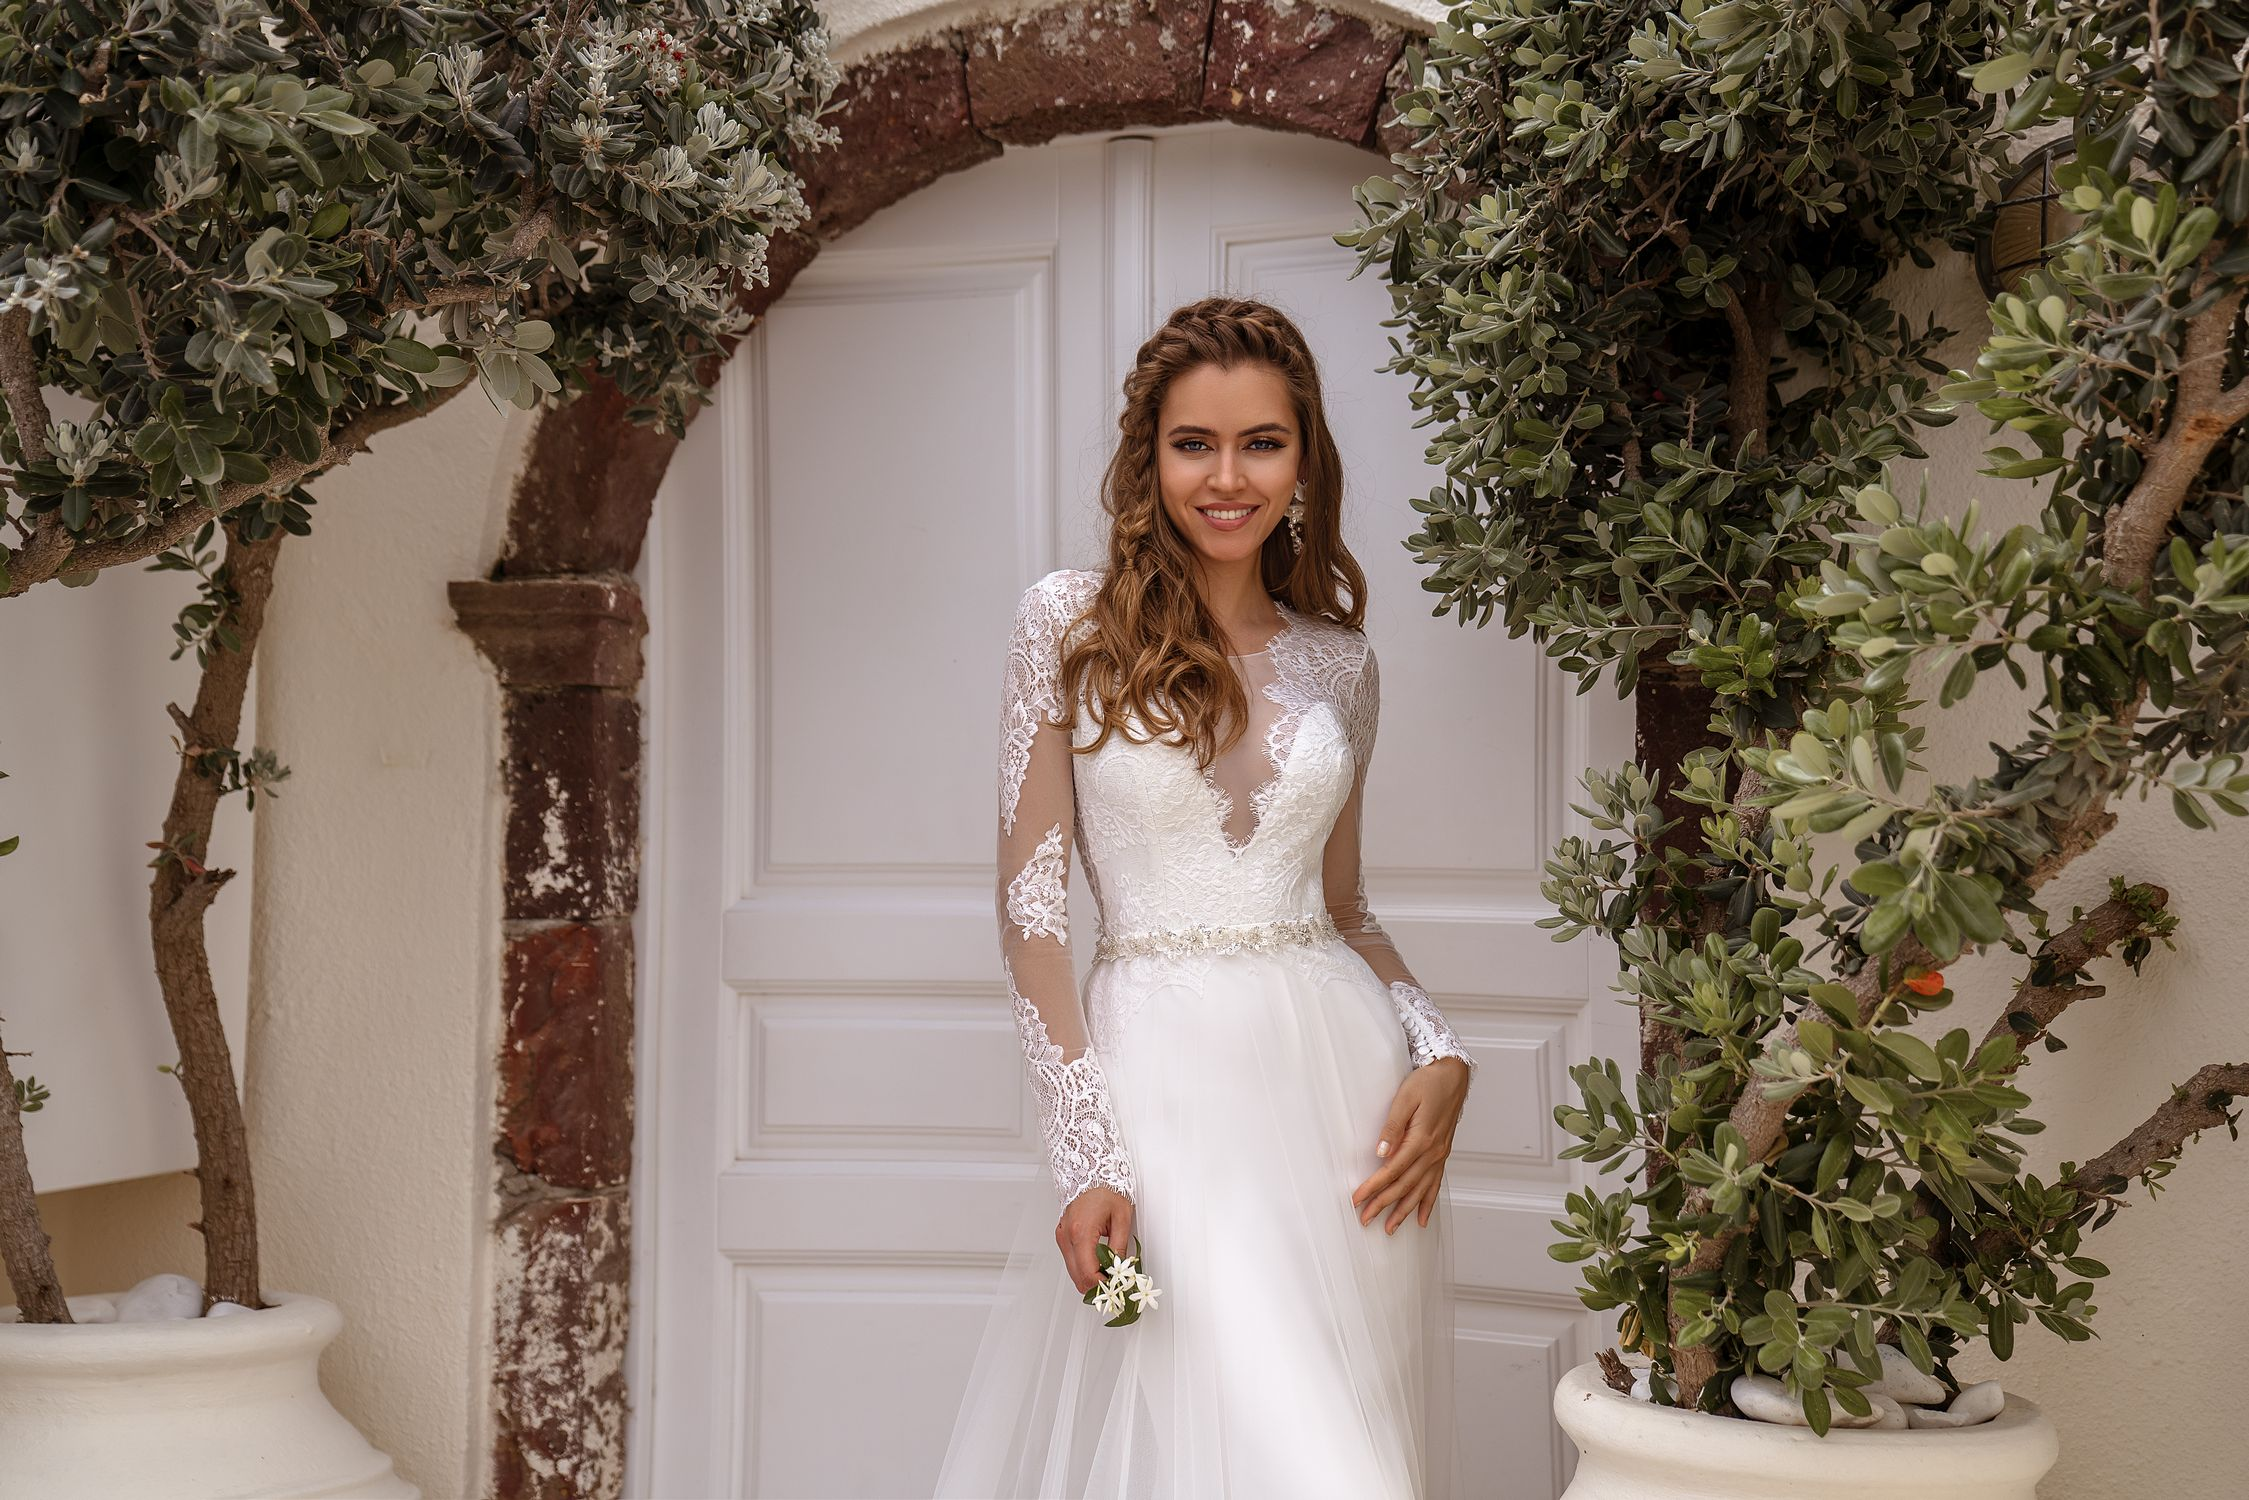 Wedding dress transformer exclusive wholesale from designers of TM Silviamo-1